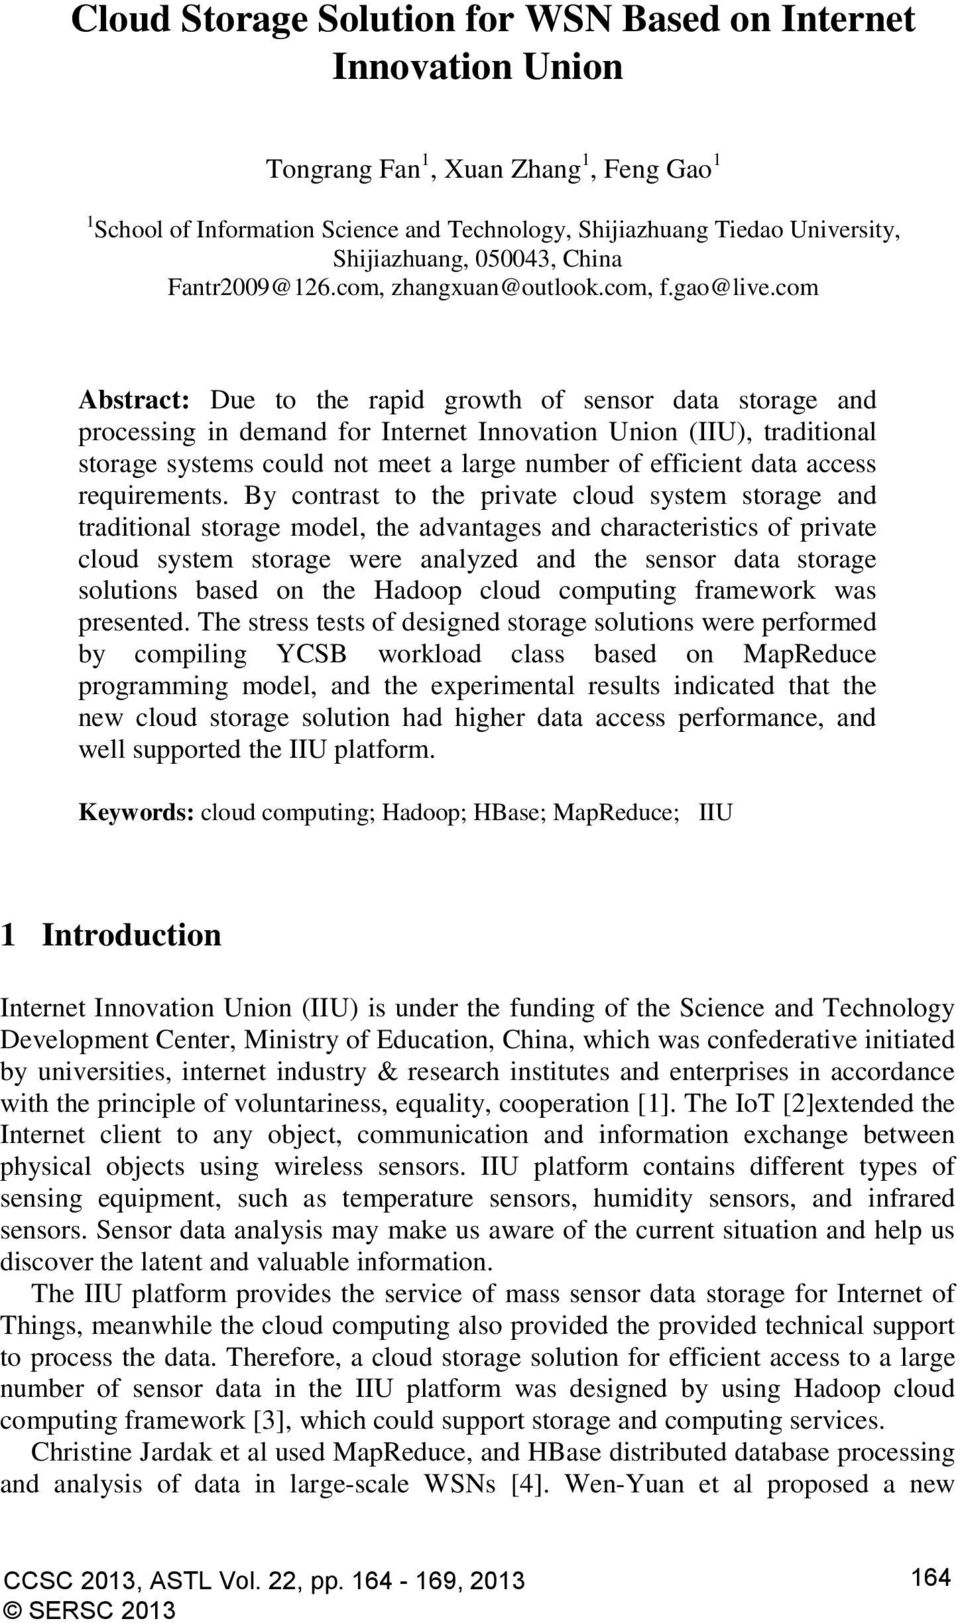 com Abstract: Due to the rapid growth of sensor data storage and processing in demand for Internet Innovation Union (IIU), traditional storage systems could not meet a large number of efficient data